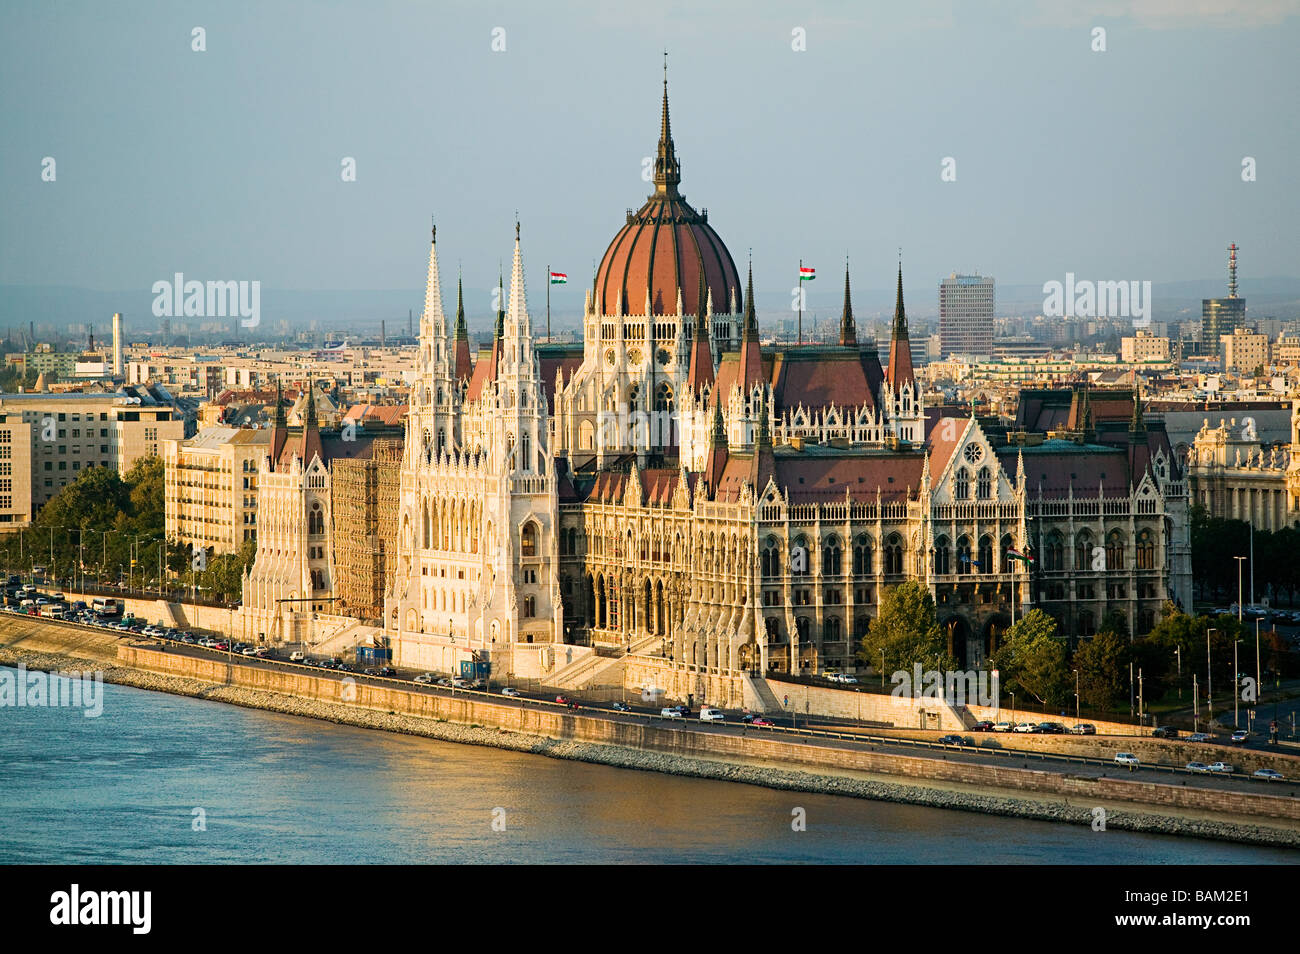 Hungarian parliament building and river danube - Stock Image